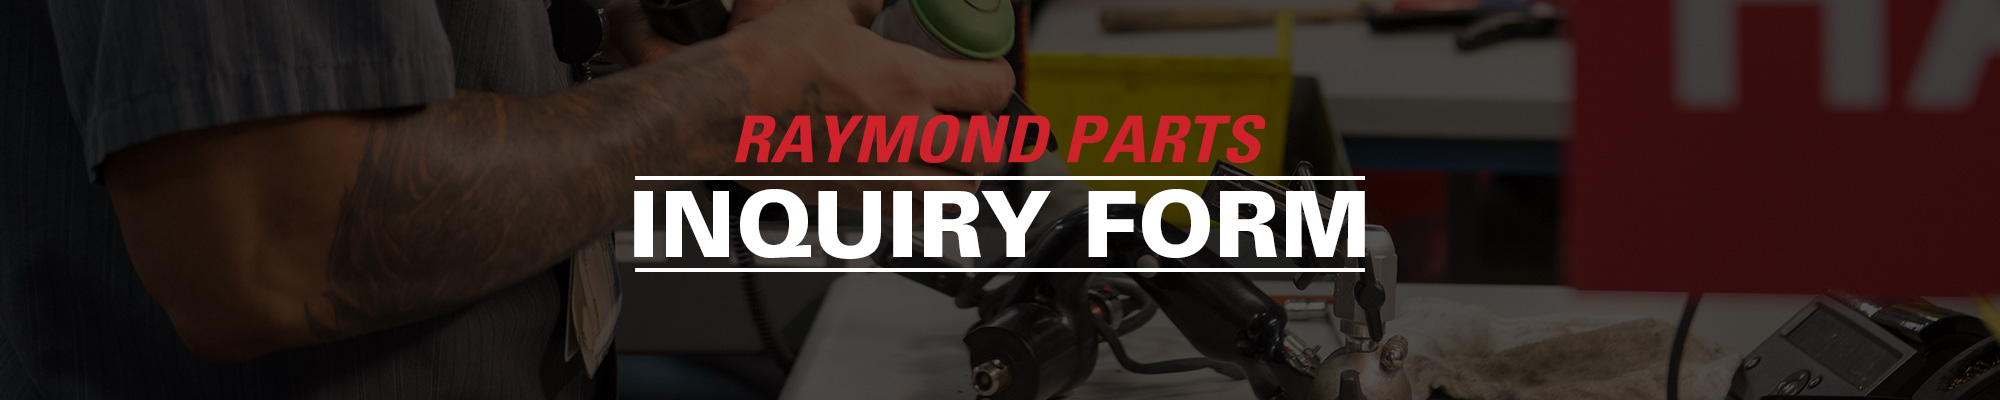 Raymond Parts, inquiry form